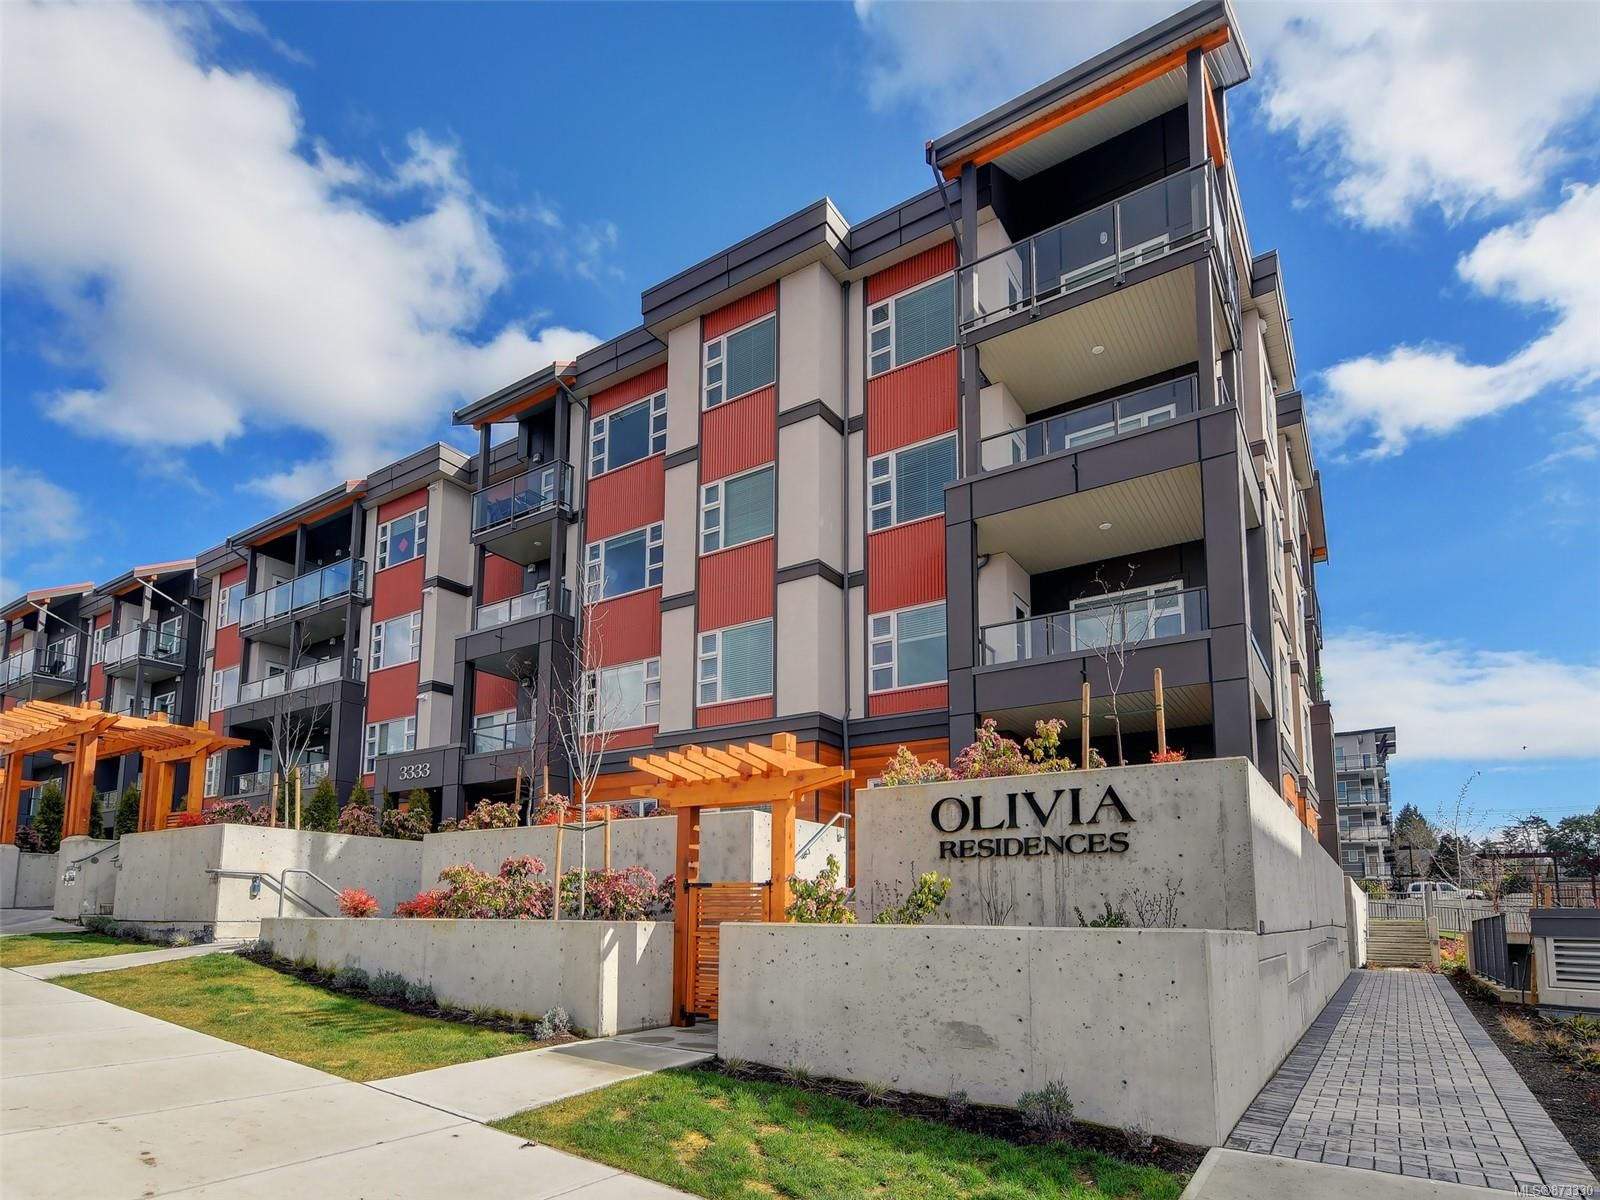 Main Photo: 312 3333 Glasgow Ave in : SE Quadra Condo for sale (Saanich East)  : MLS®# 873330